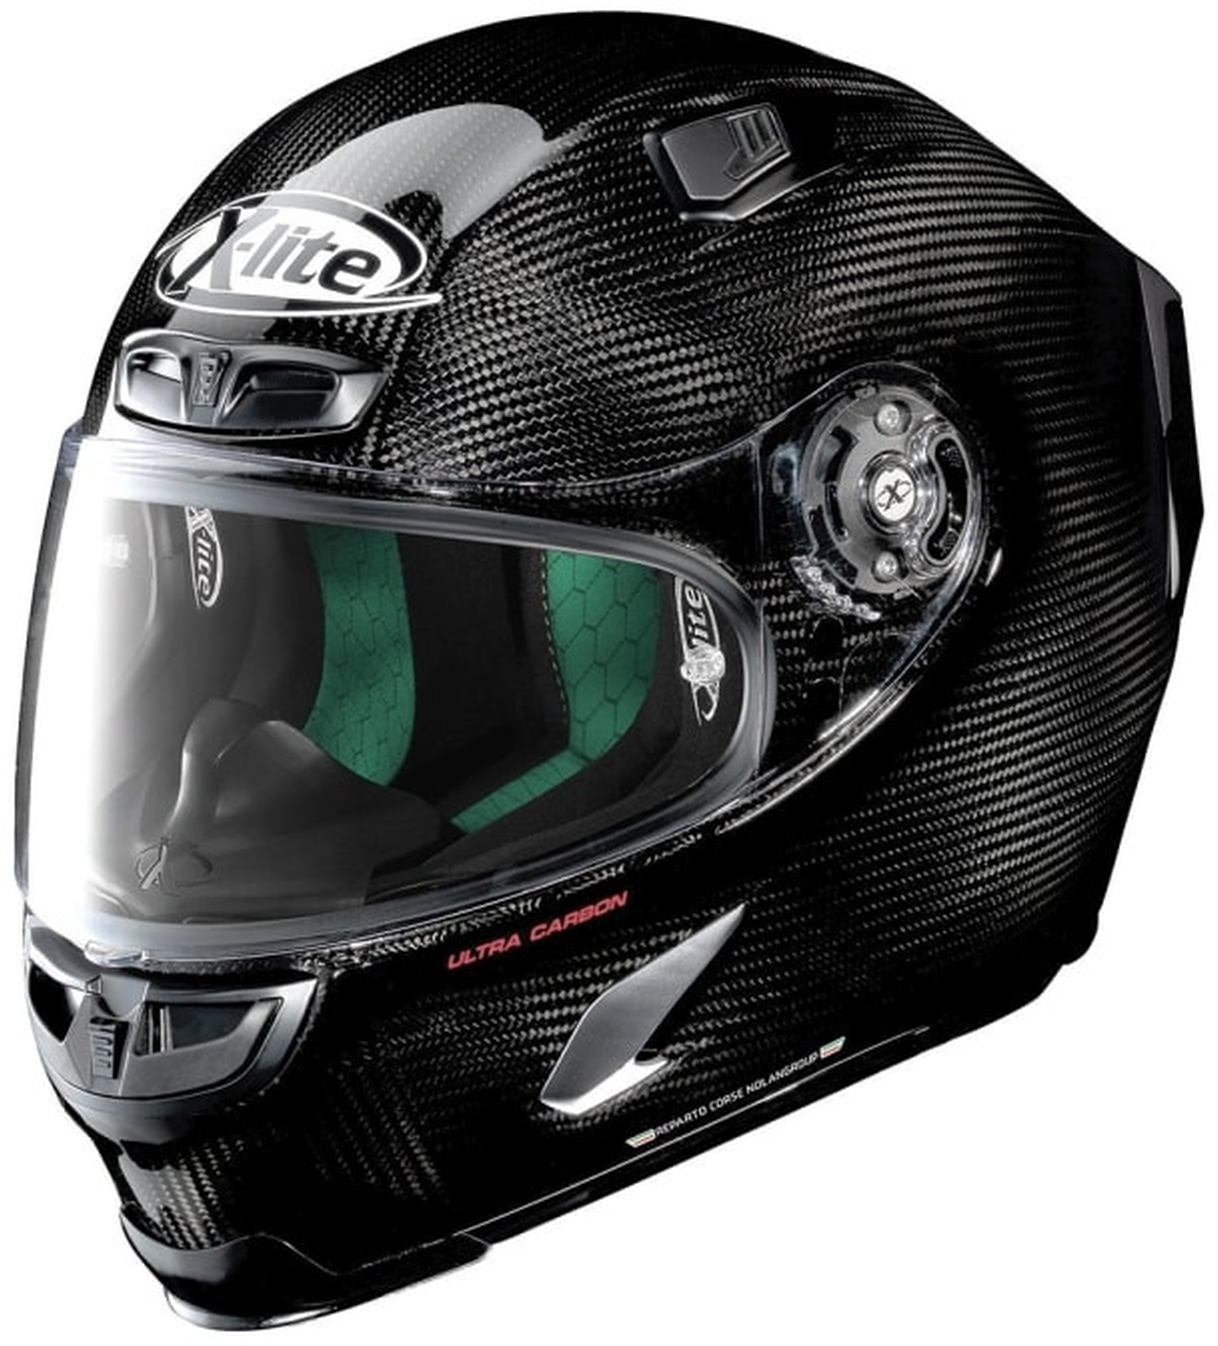 CASCO X-803 ULTRA CARBON